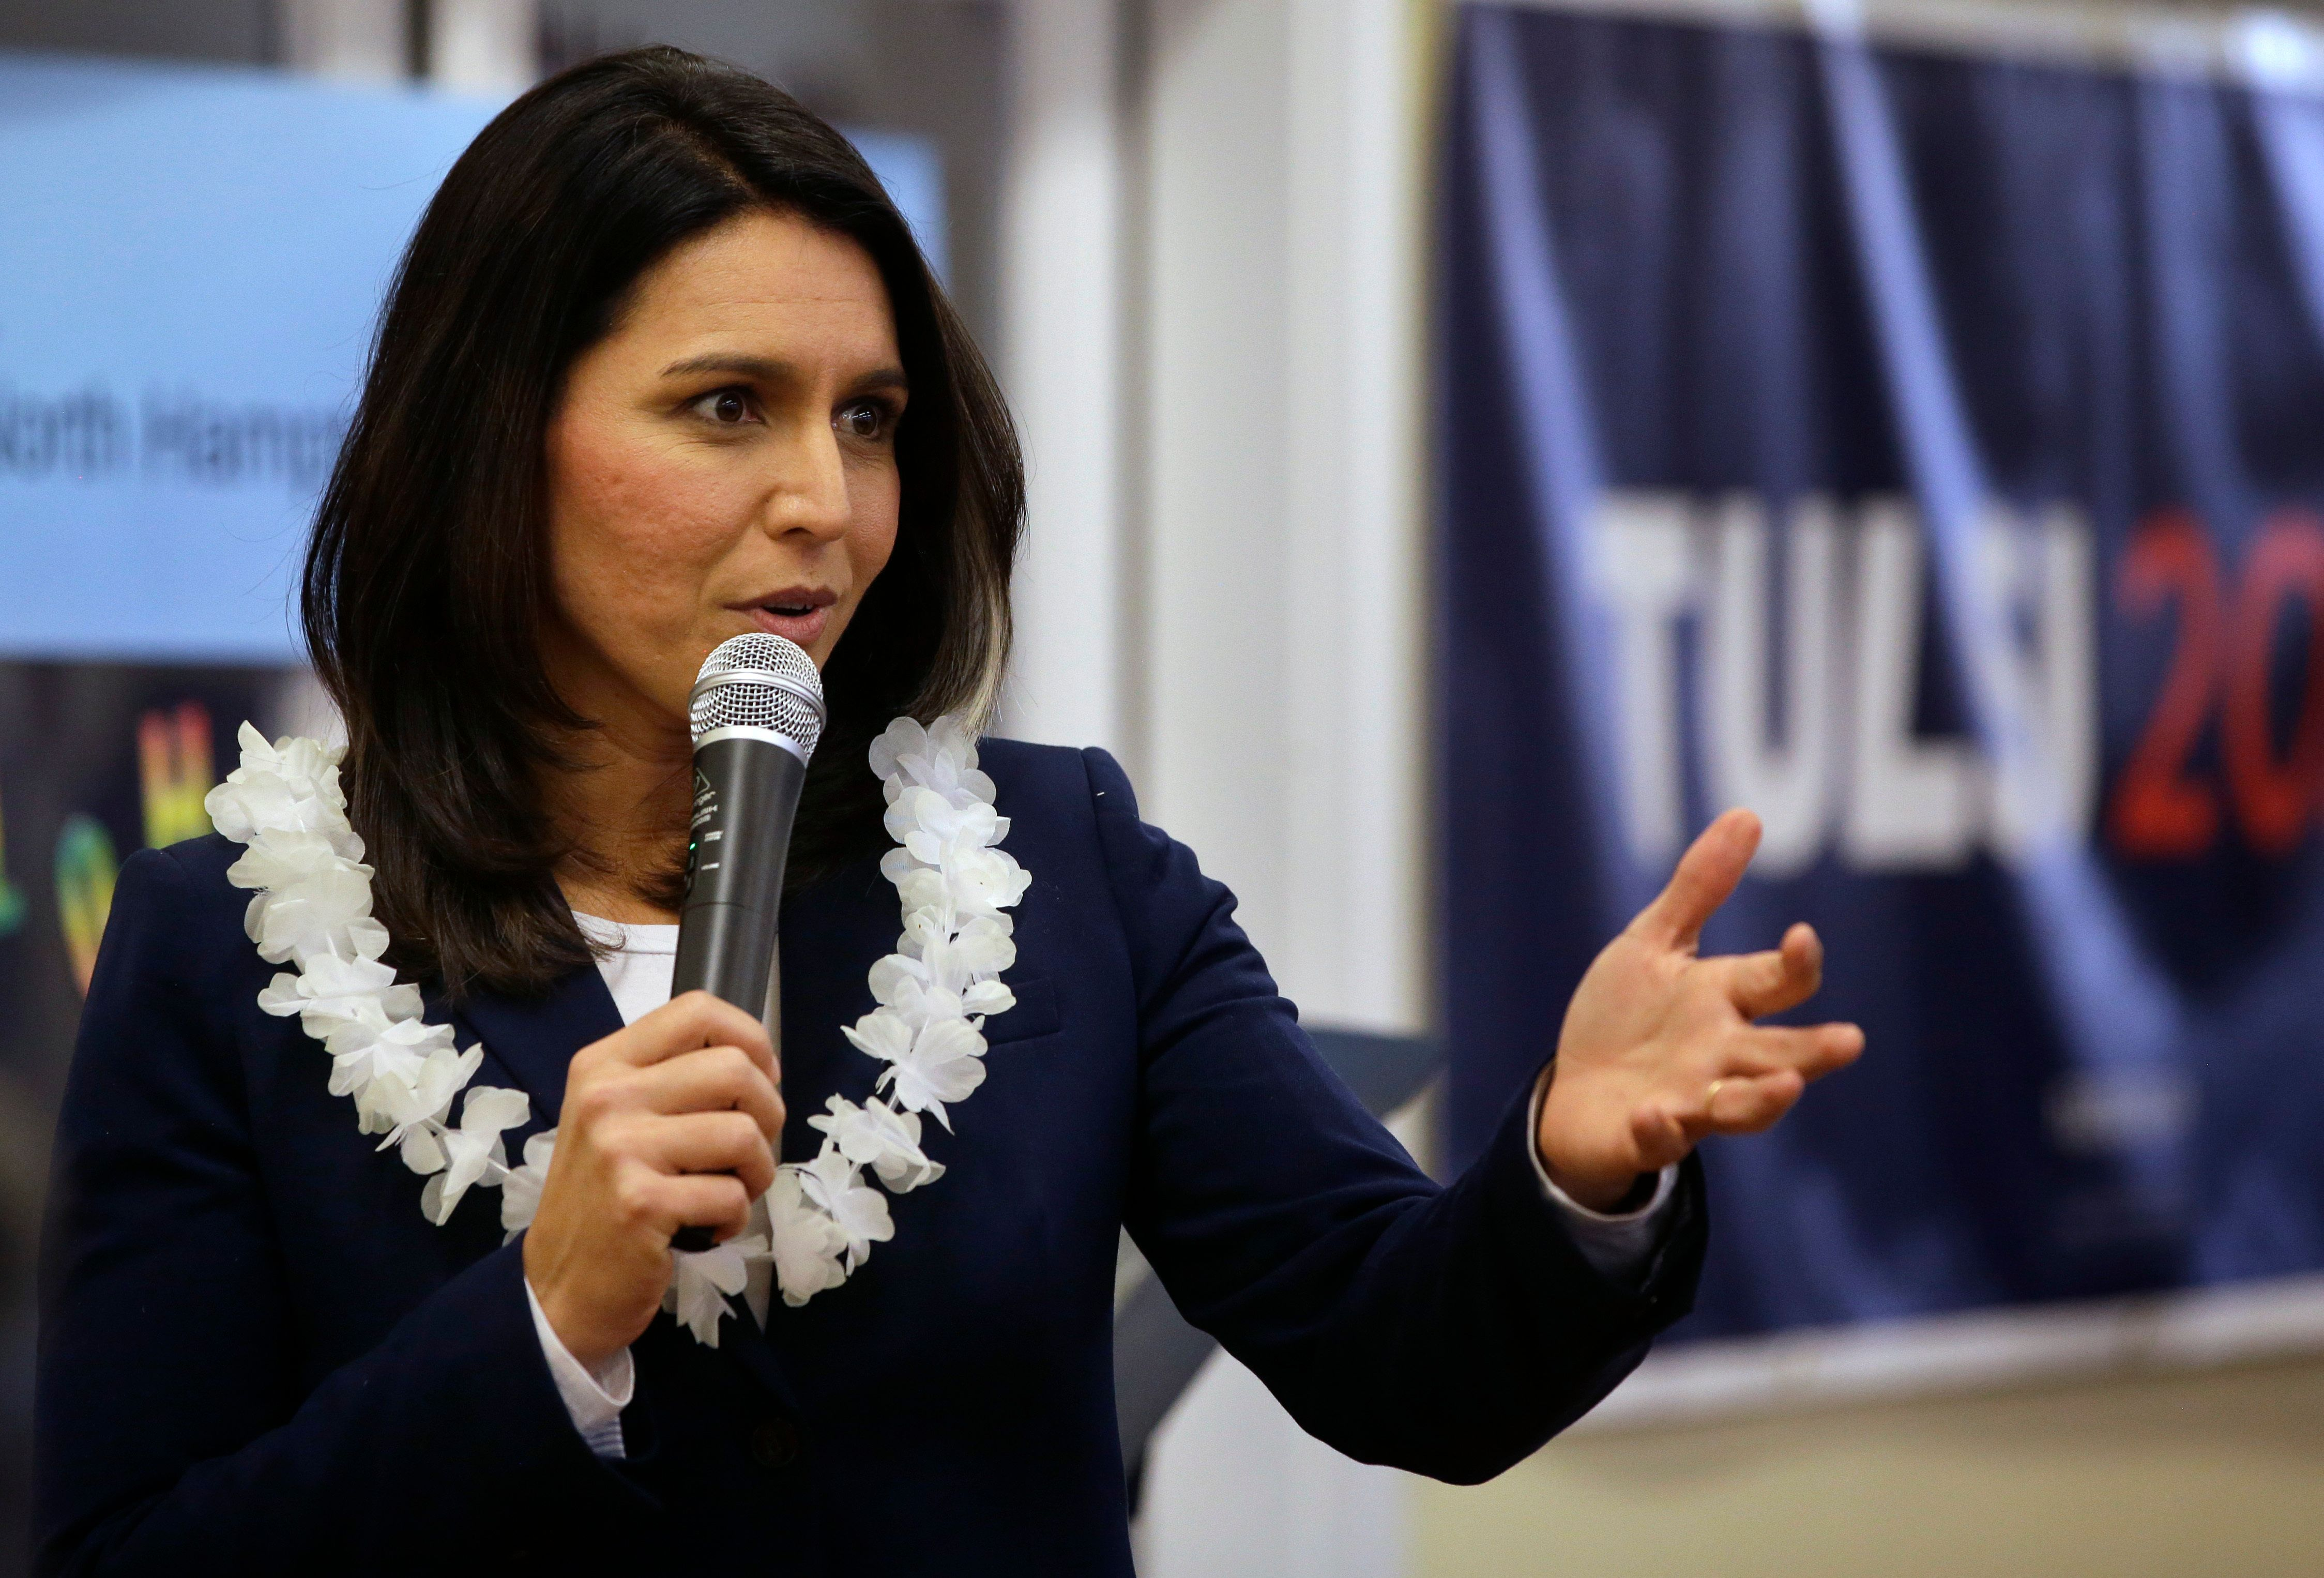 Presidential hopeful U.S. Rep. Tulsi Gabbard, D-Hawaii, addresses an audience during a meet and greet, Sunday, Feb. 17, 2019, in North Hampton, N.H. (AP Photo/Steven Senne)